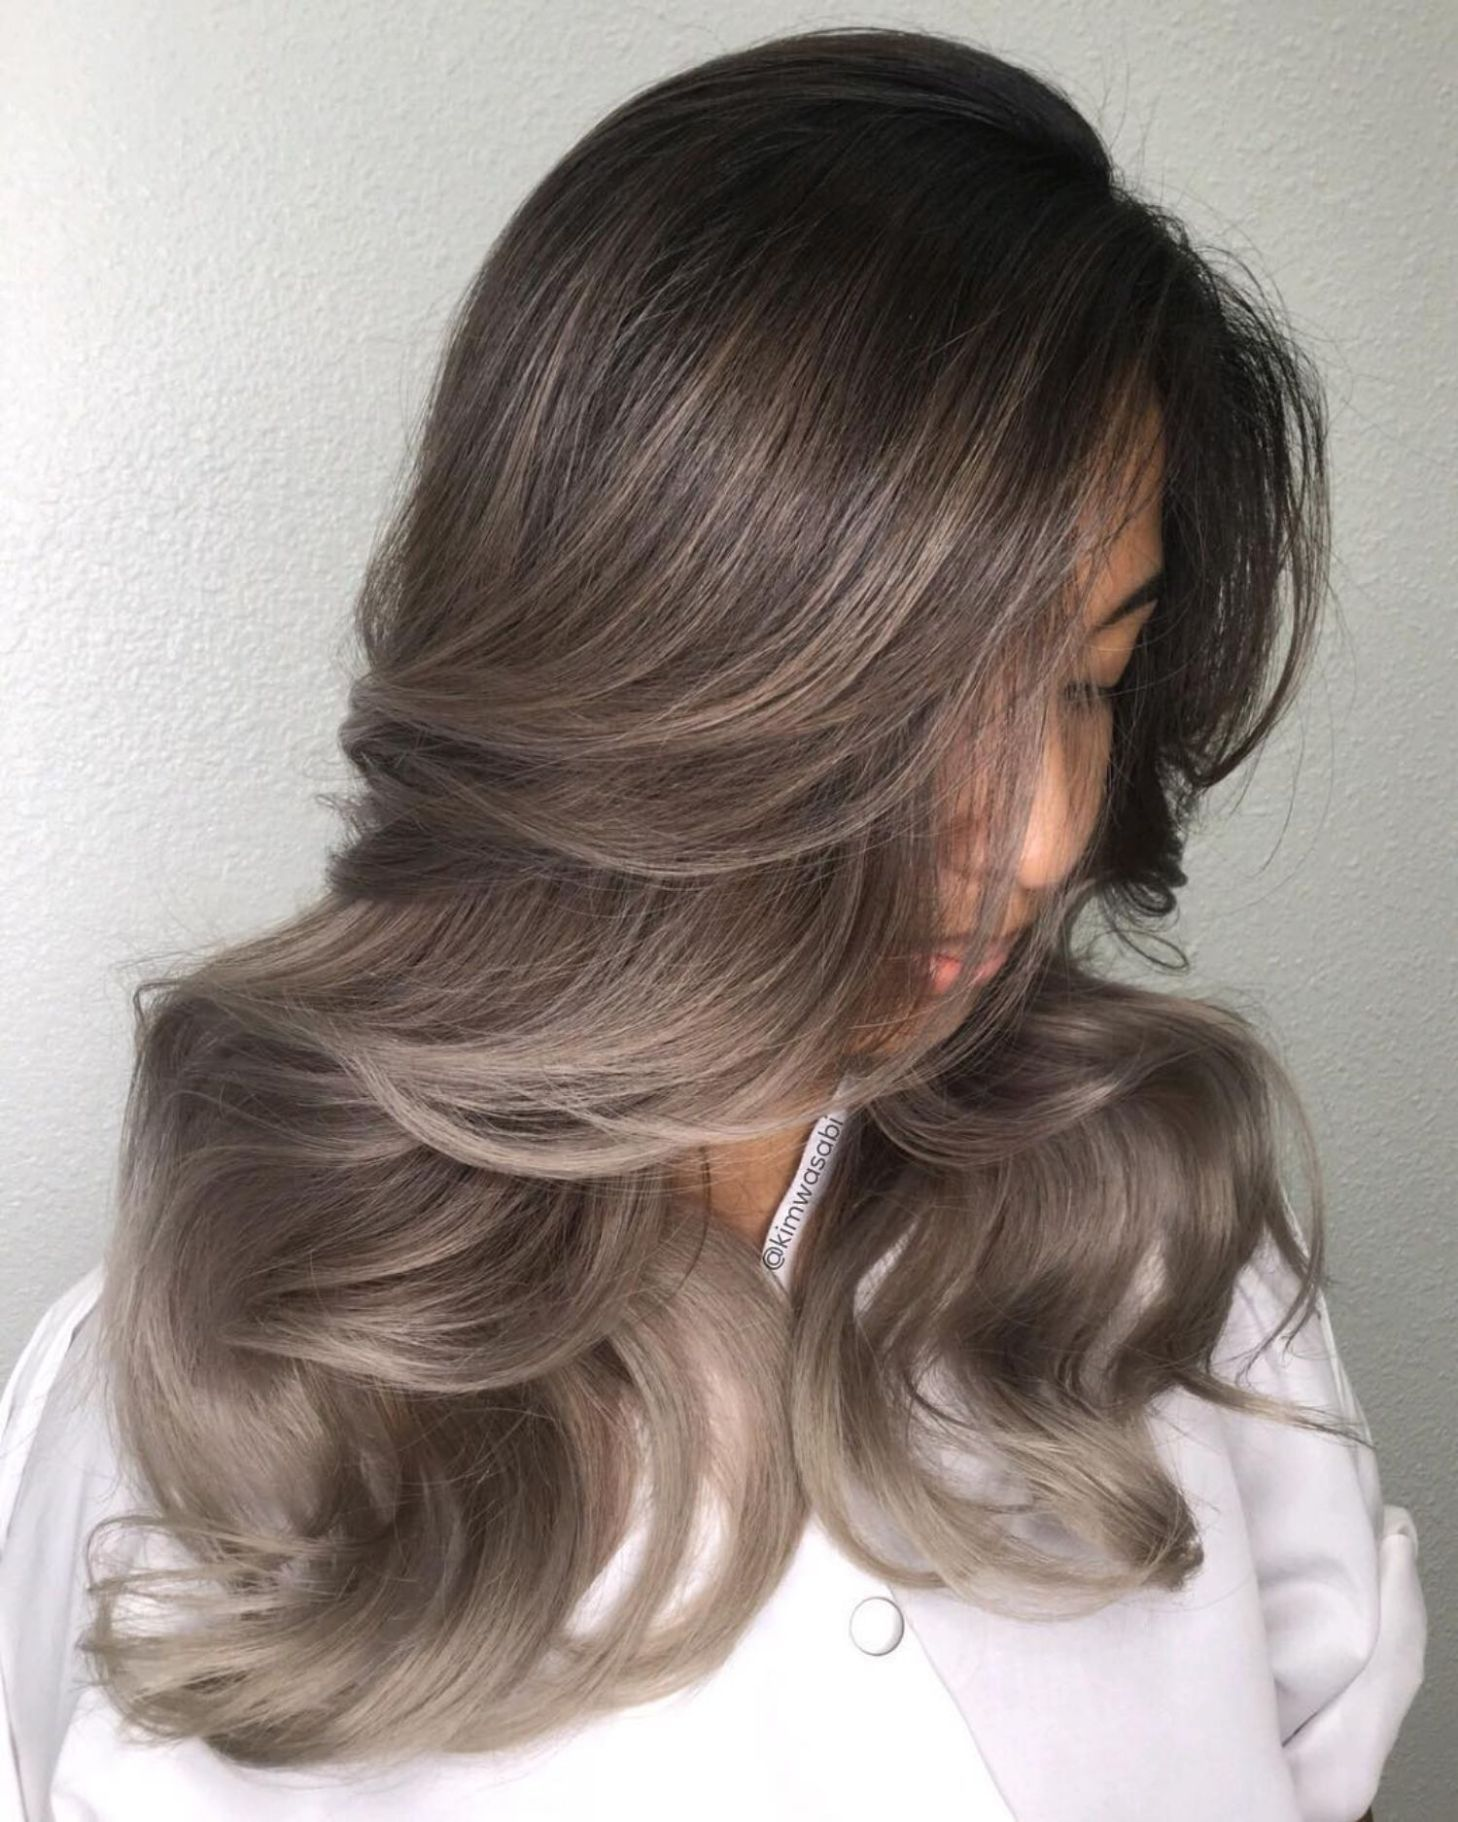 60 Shades Of Grey Silver And White Highlights For Eternal Youth Hair Color For Morena Hair Color For Brown Skin Gray Balayage